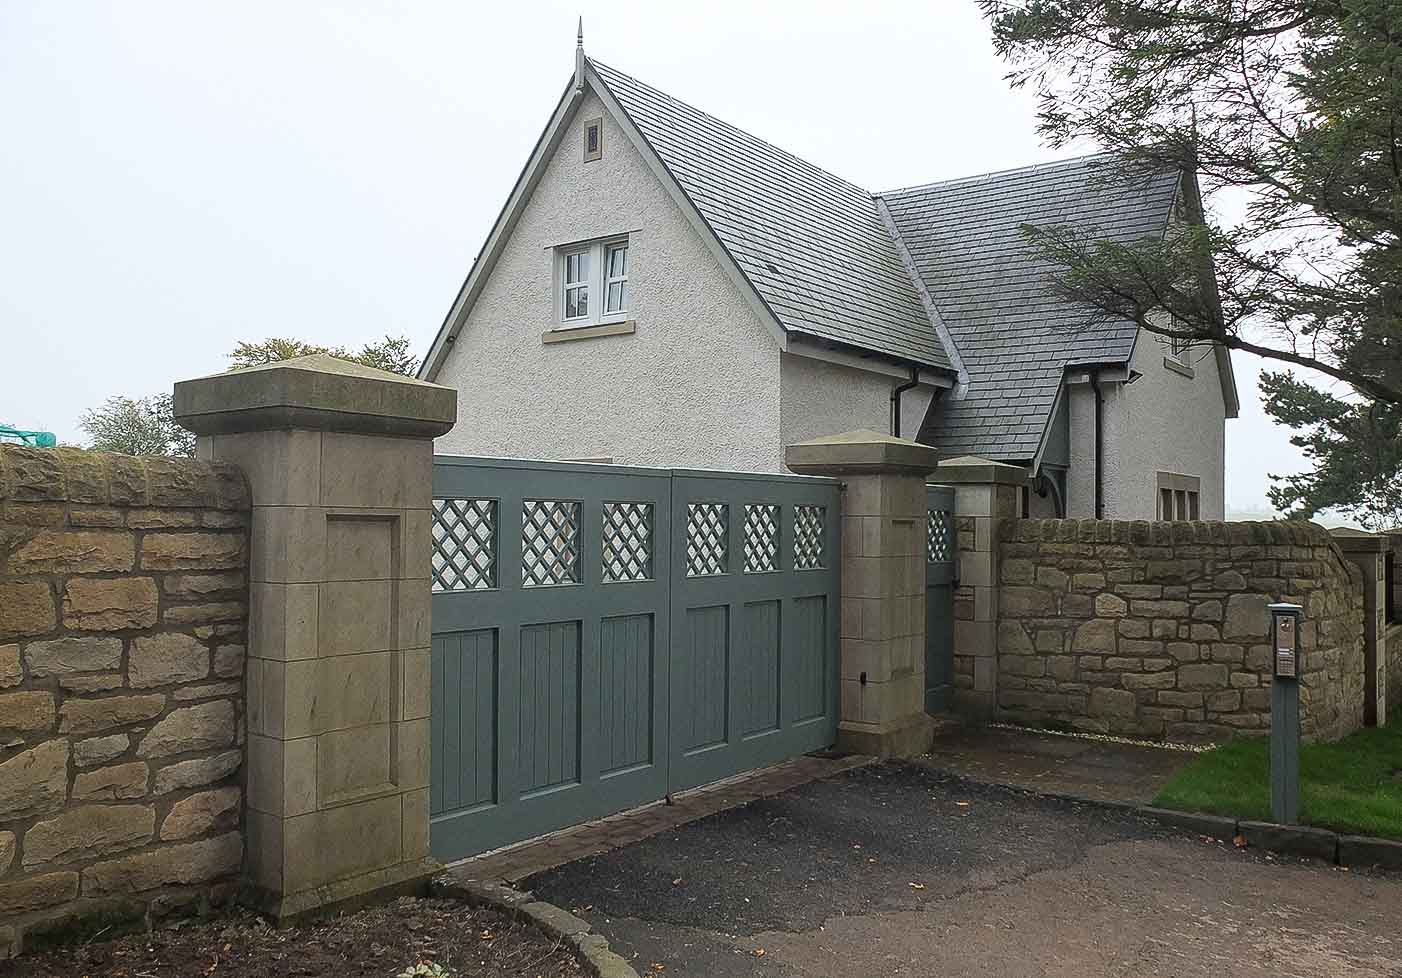 Jack Hyams - Residential Main Gates Designs & Manufacturer in Scotland